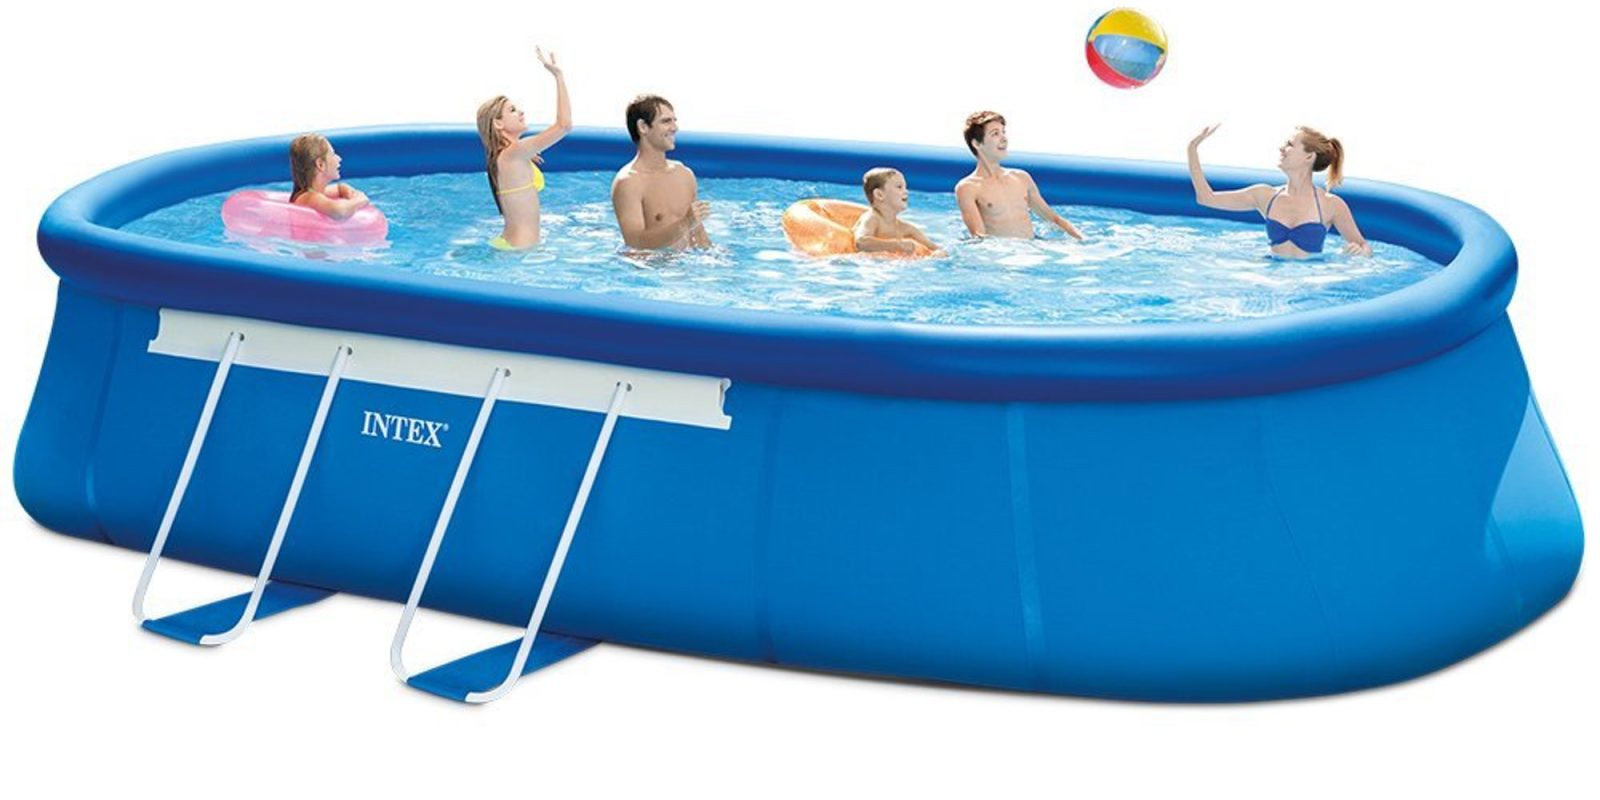 Pool Filterpumpe Betrieb Intex 20ft X 12ft X 48in Oval Frame Pool Set 350 Shipped